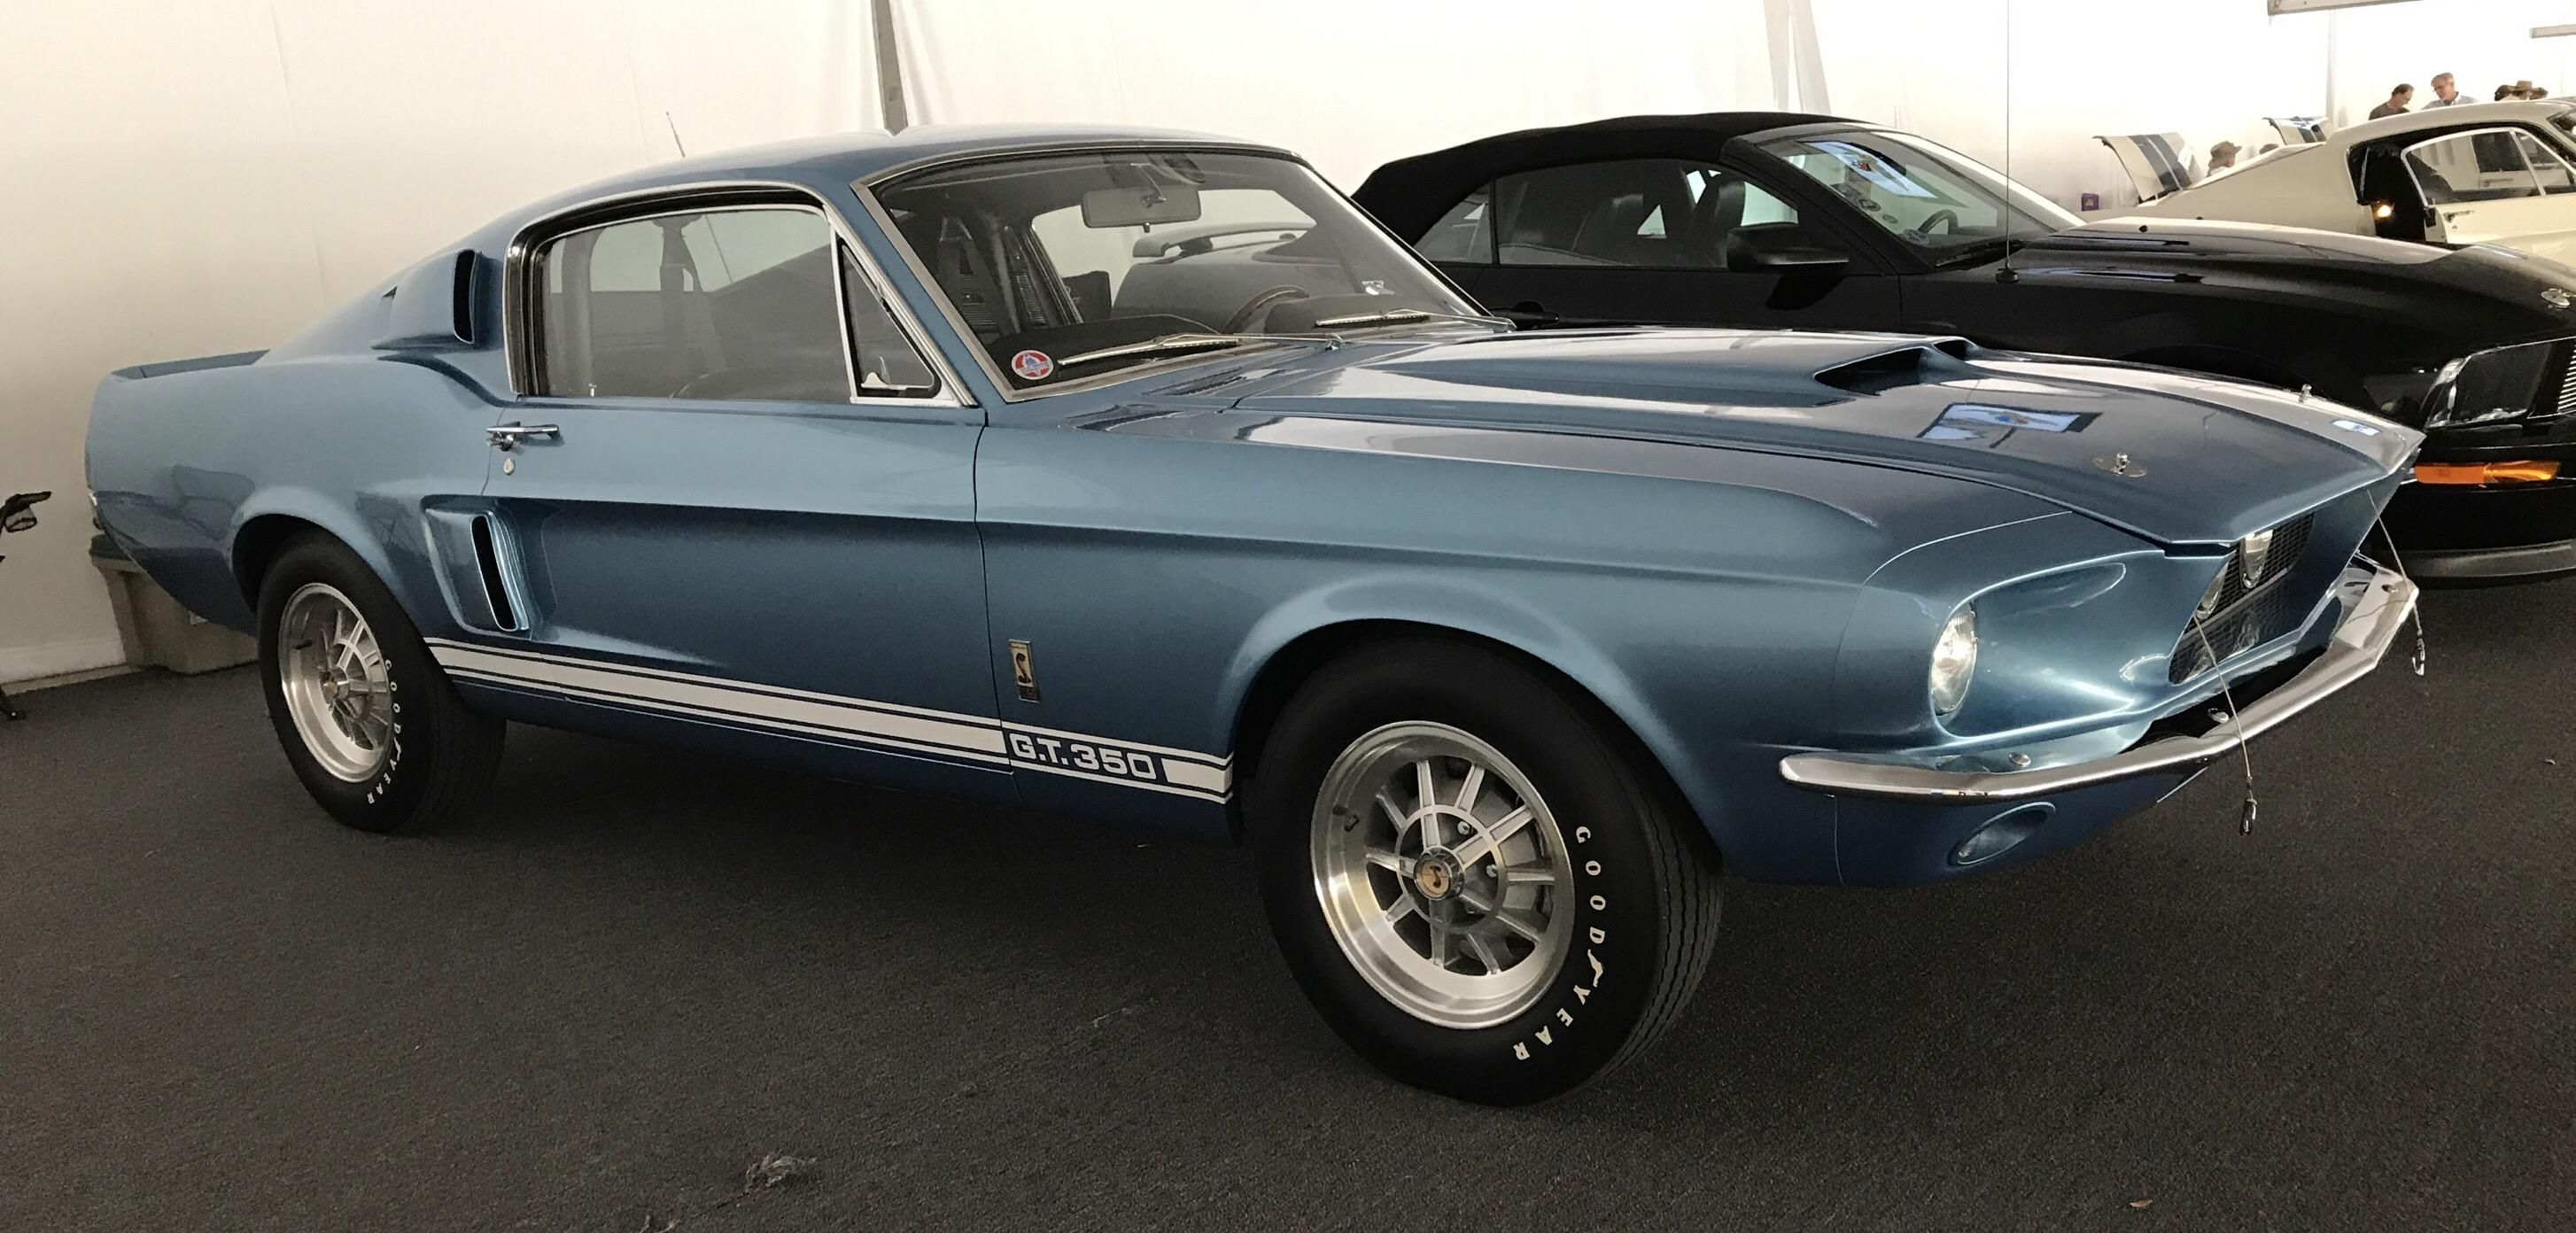 67 GT350   50th birthday   Pinterest   Mustang and Cars